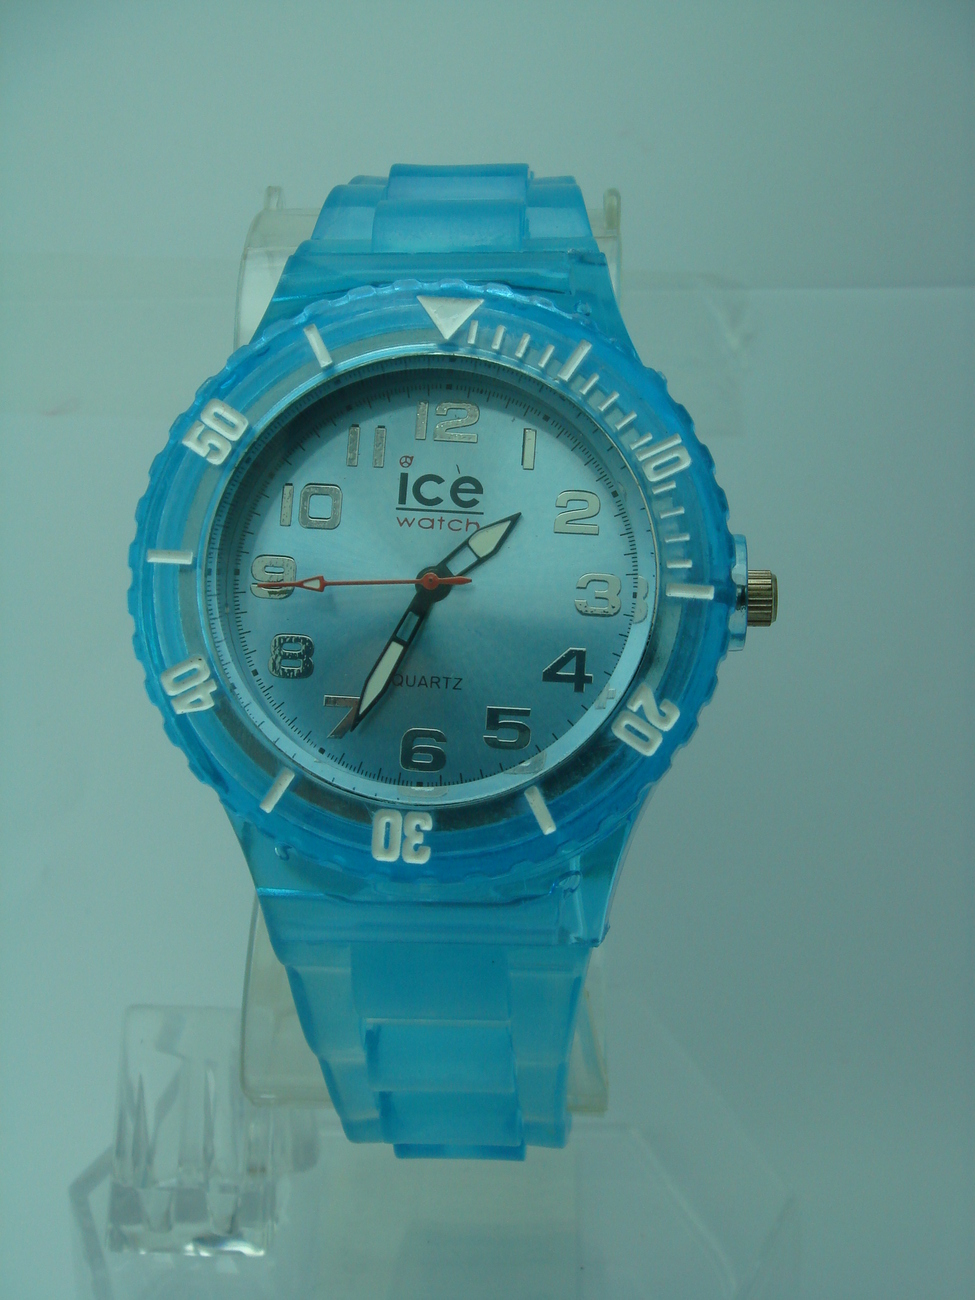 TRANSPARENT BLUE  cute Unisex wrist ICE watch  fashion jelly watch